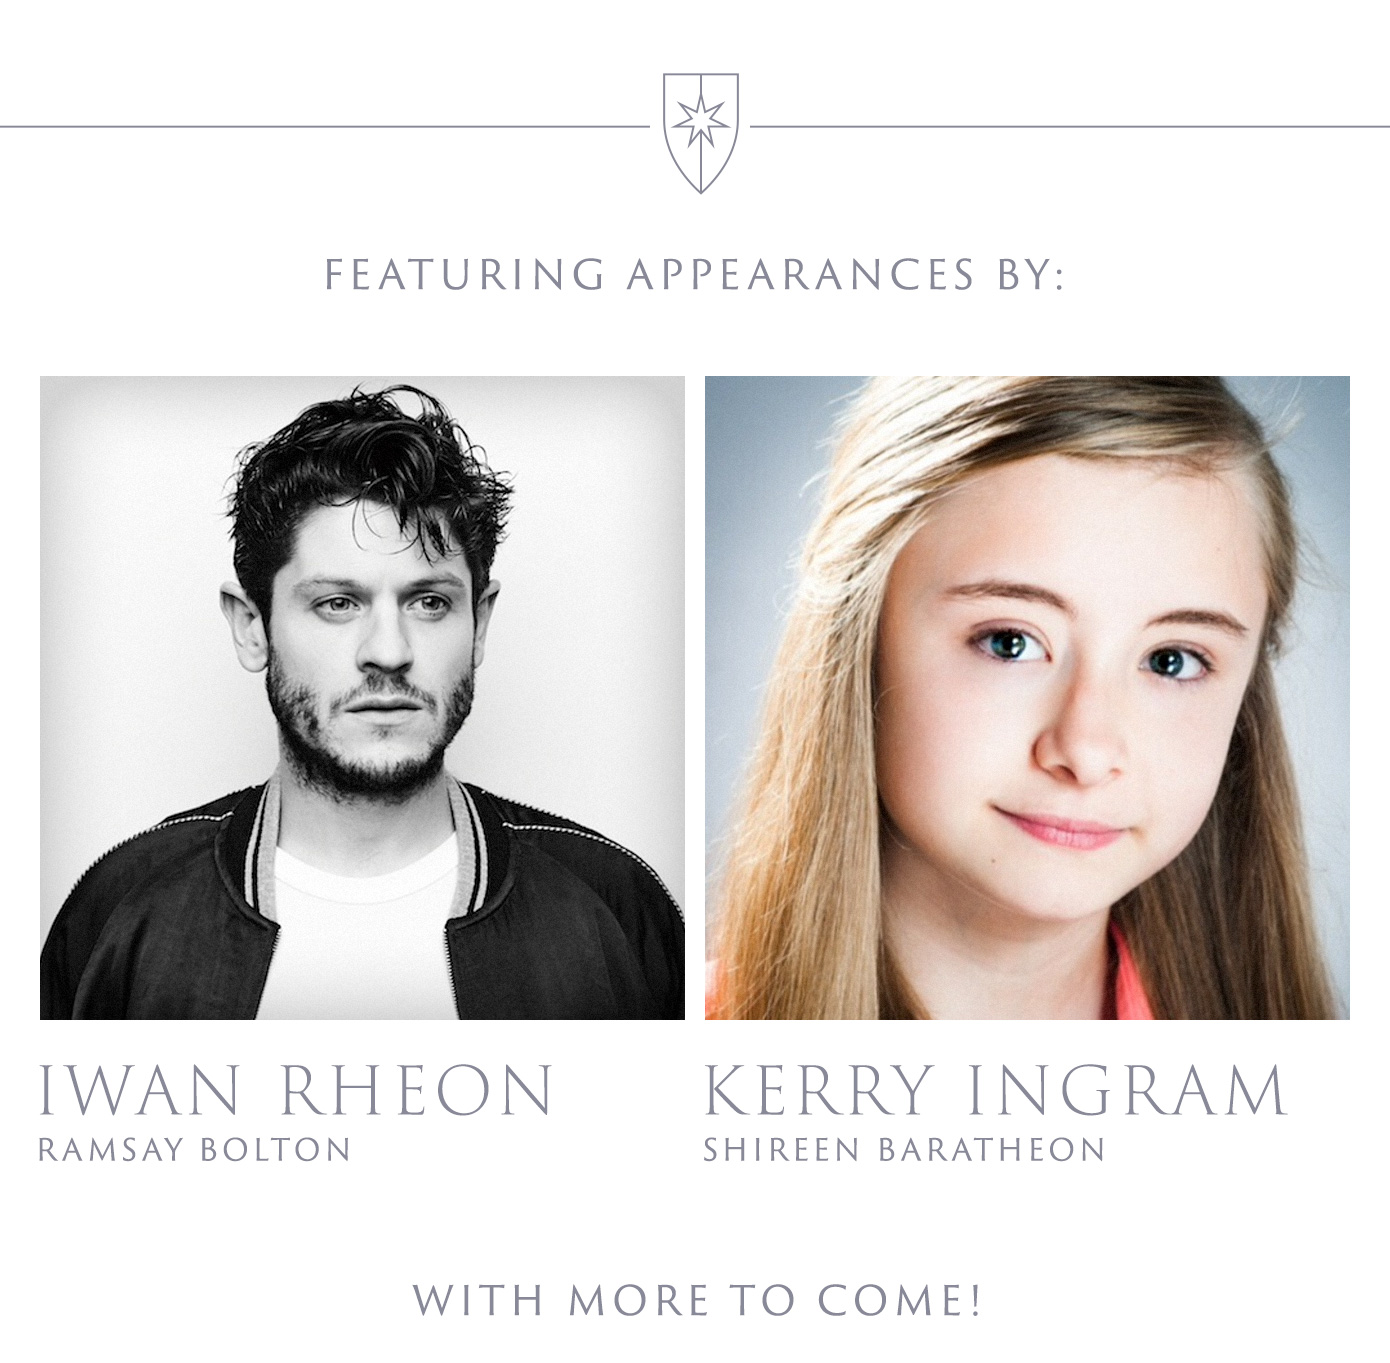 Featuring appearances by special guests from the world of Game of Thrones